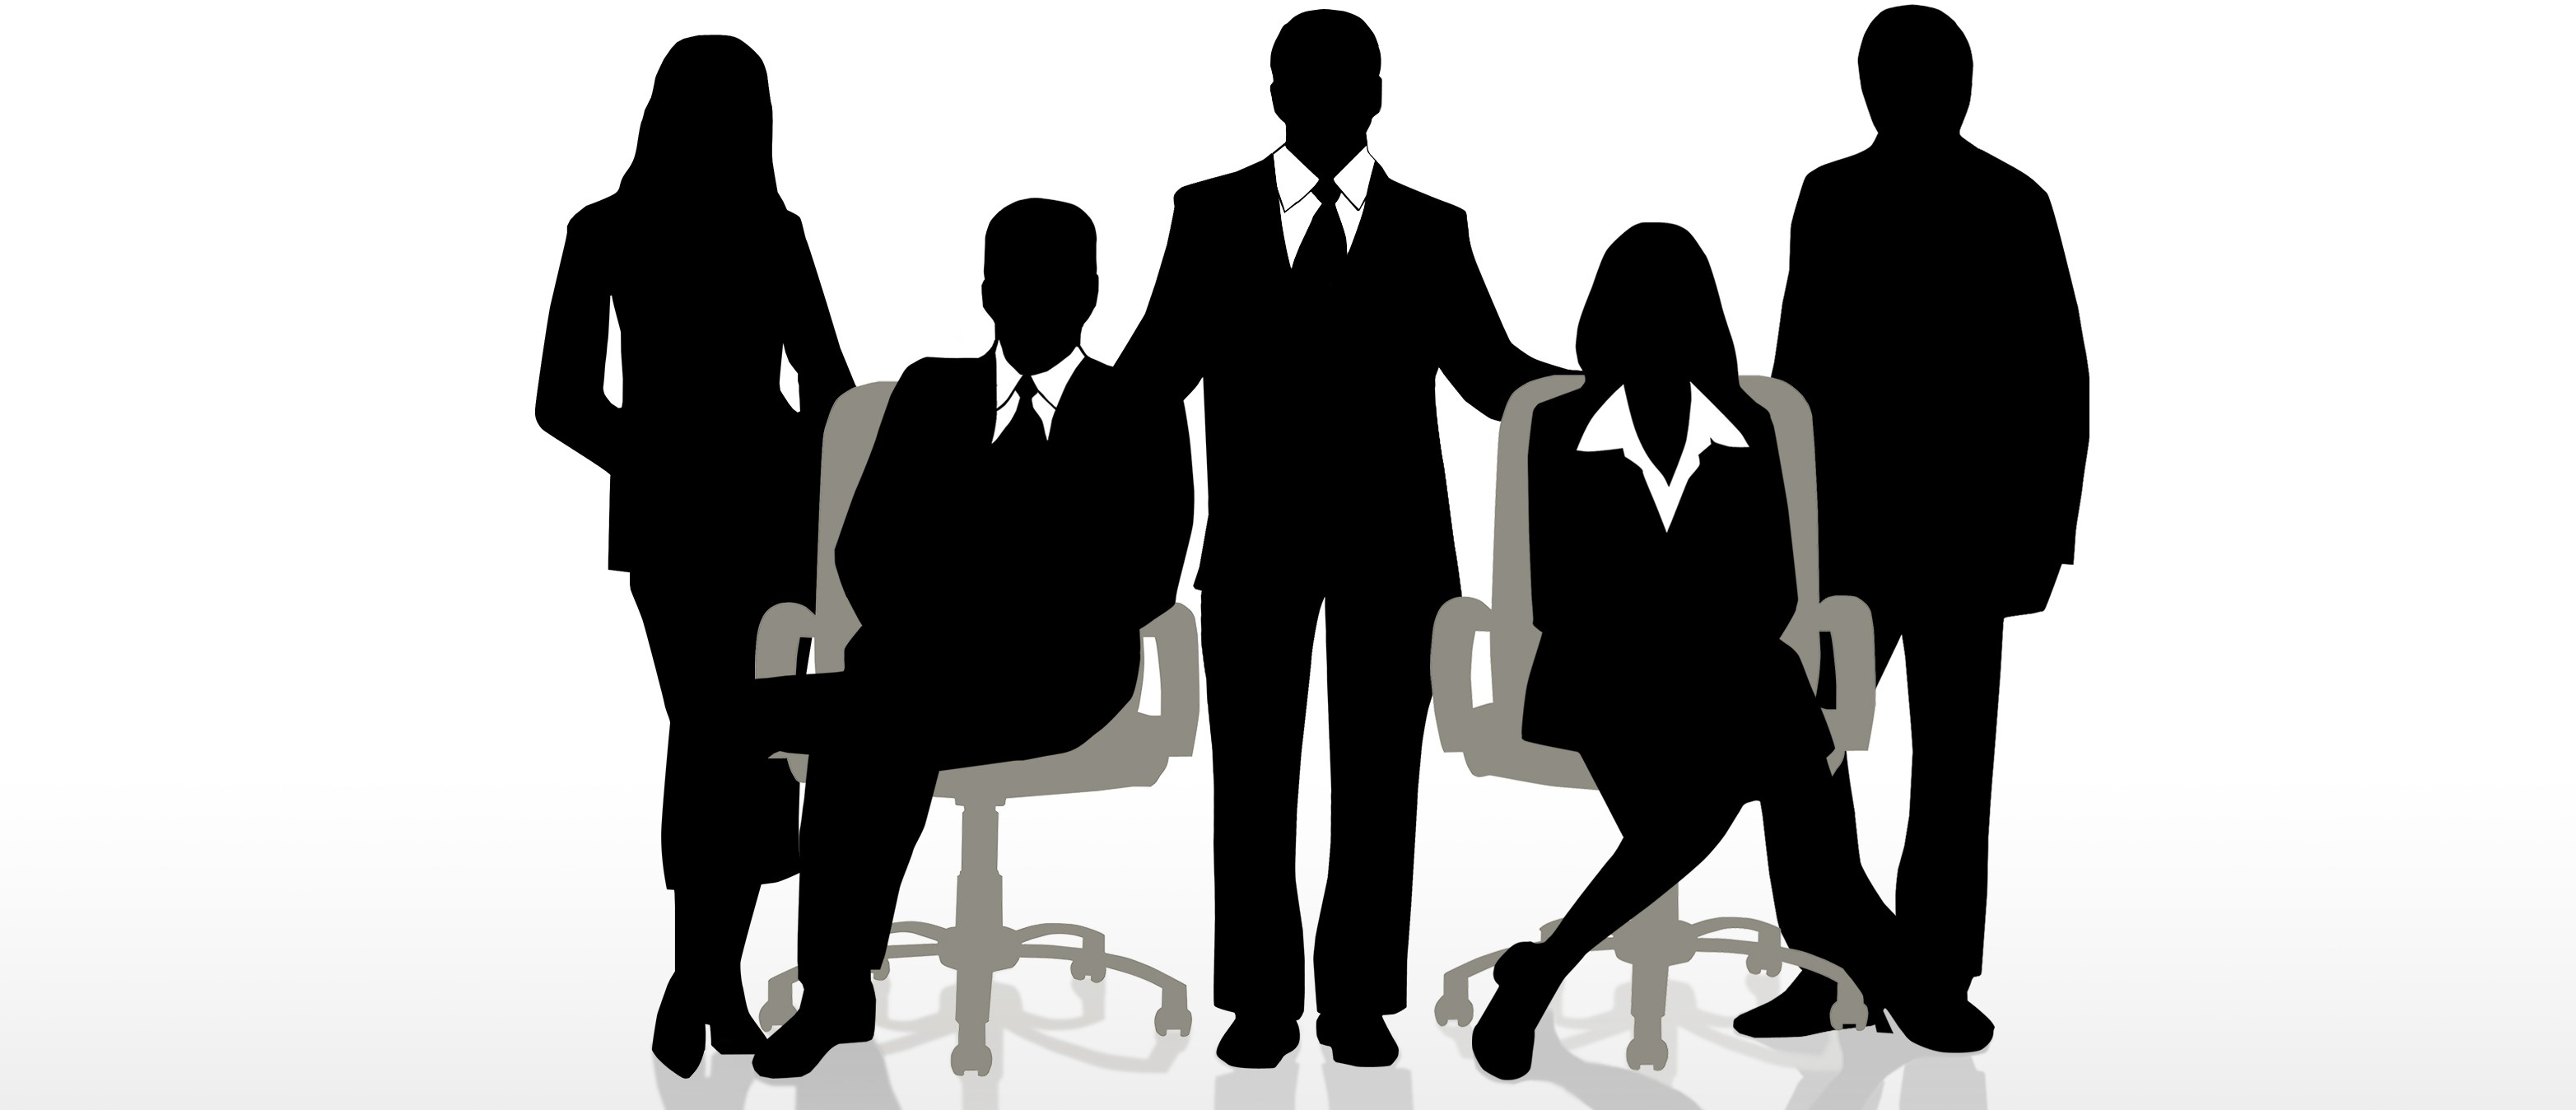 Staff clipart corporate team Syndicate silhouette  art Google